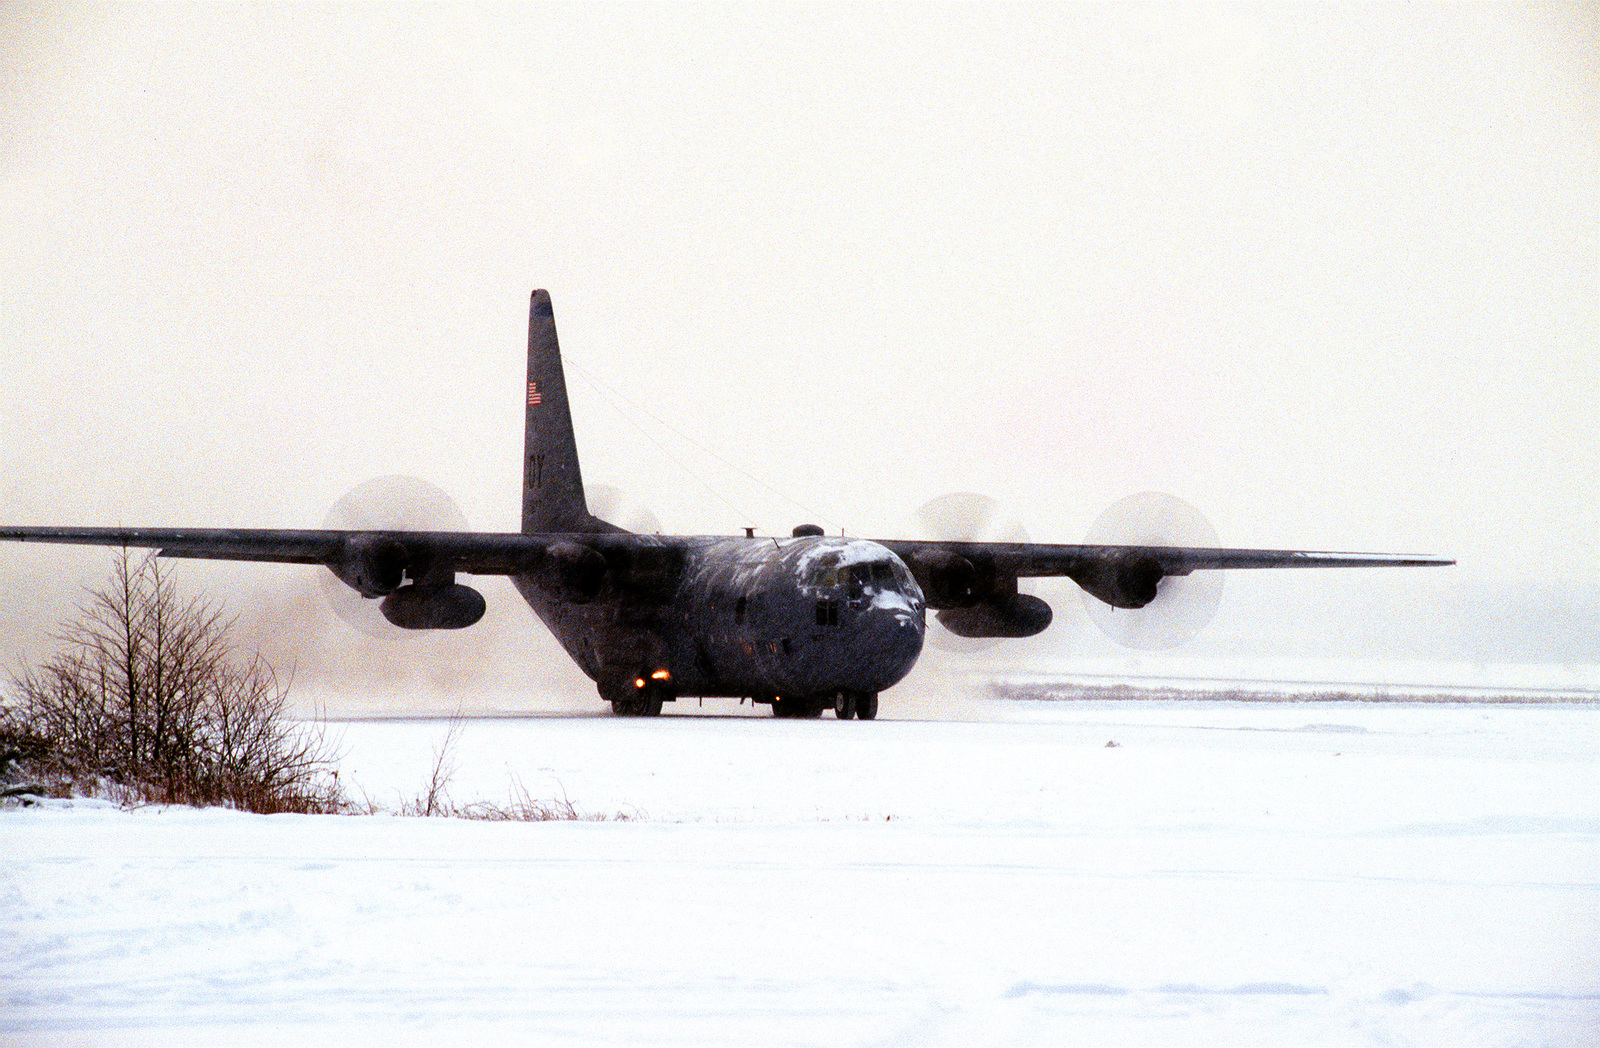 A 40th Airlift Squadron (AS) C-130H taxies on the snow covered flight line at this United States Air Force Europe (USAFE) base. The 40th AS is assigned to the 7th Wing, Dyess Air Force Base, Texas and is deployed to Ramstein to support Operations Joint Endeavor and Joint Guard from 4 Dec. 1996 to 23 Jan. 1997